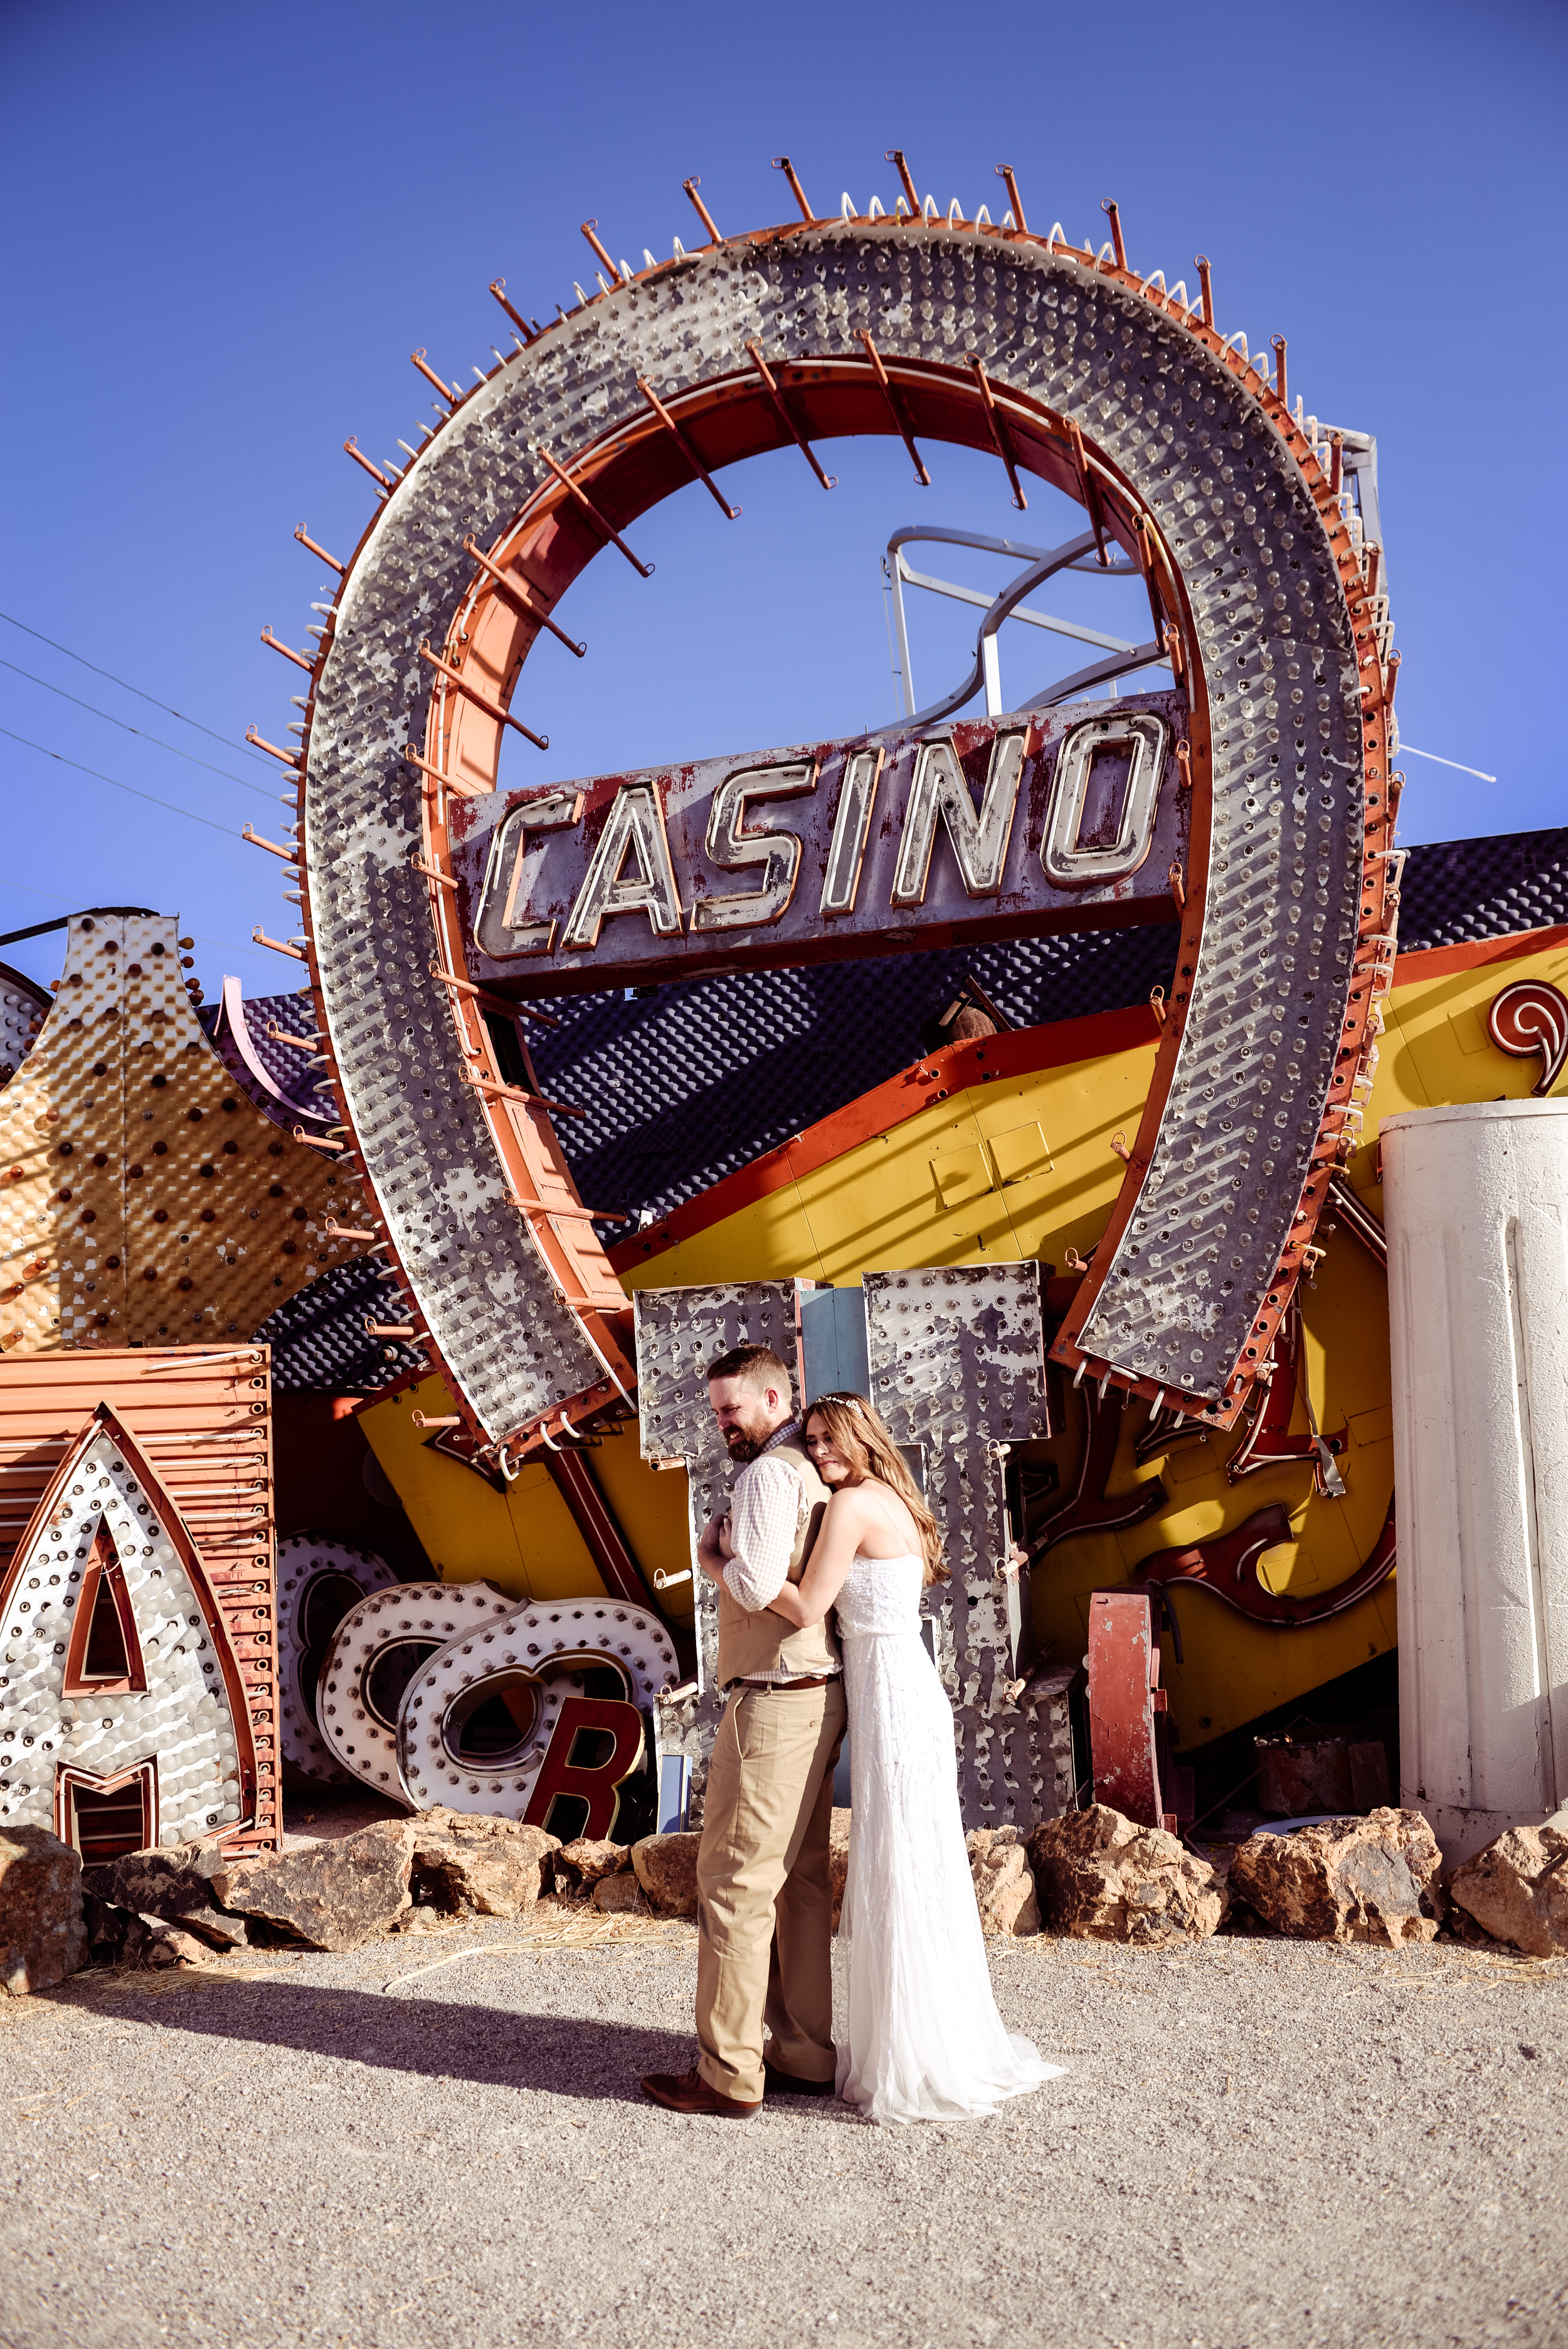 dtlv, las vegas downtown, downtown las vegas elopement, neon museum las vegas, las vegas neon museum, pop up wedding flora pop wedding, flora pop, dry lake beds, las vegas elopement